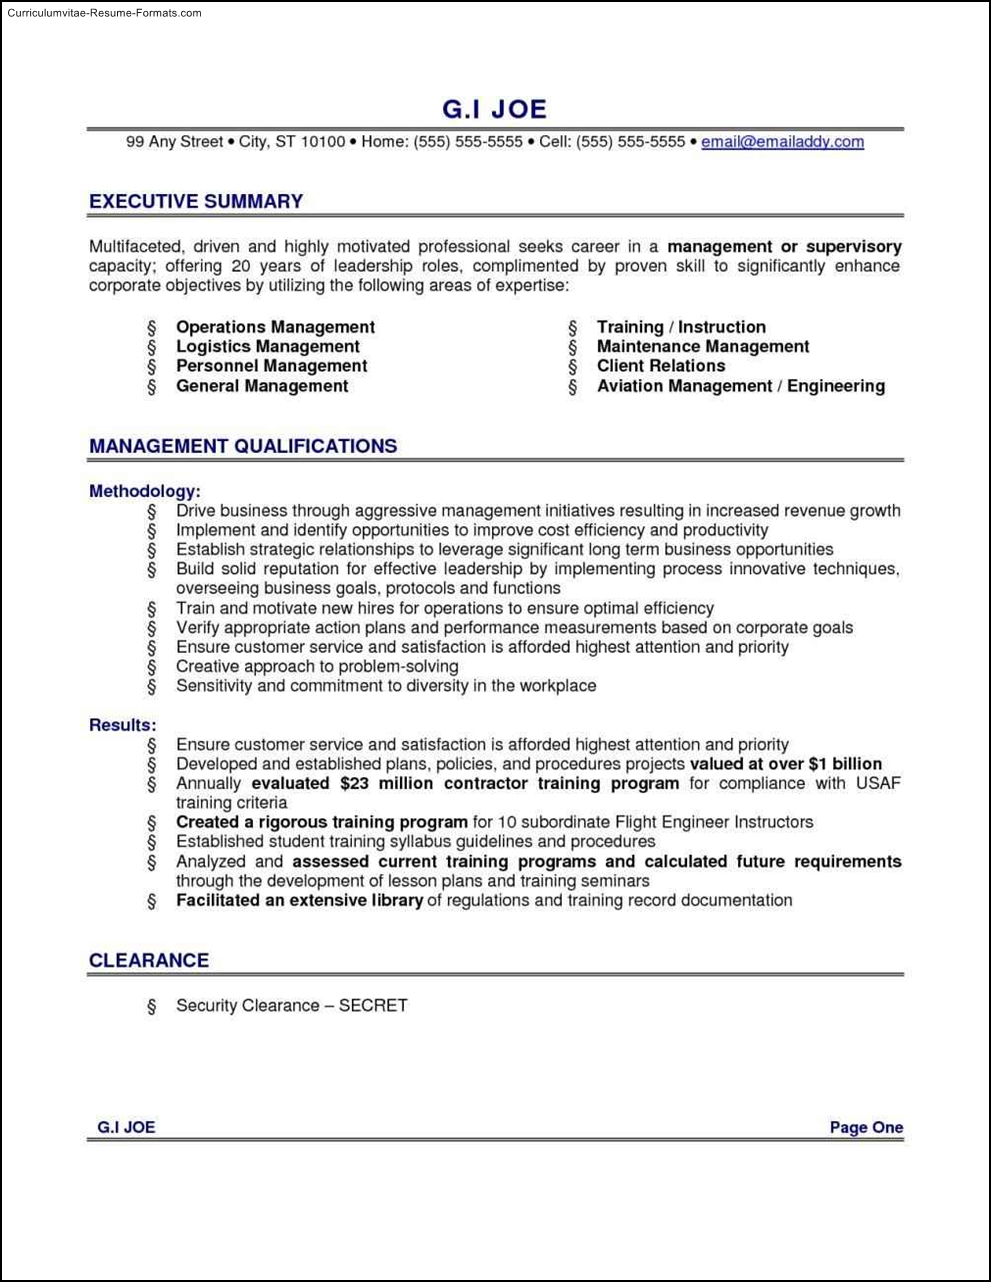 Executive-Summary-Resume-Example-Template Curriculumvitae Summary Samples on 95 theses summary, accounting resume summary, operations manager resume summary, the battle of salamis summary, research summary, textbook chapter summary, apa format summary, product summary, example of a story summary, 6 grade summary, case summary, book summary, the art of war summary, presentation summary, example resume summary, job skills summary, template for writing a summary, professional summary, steps writing summary, part of a resume summary,